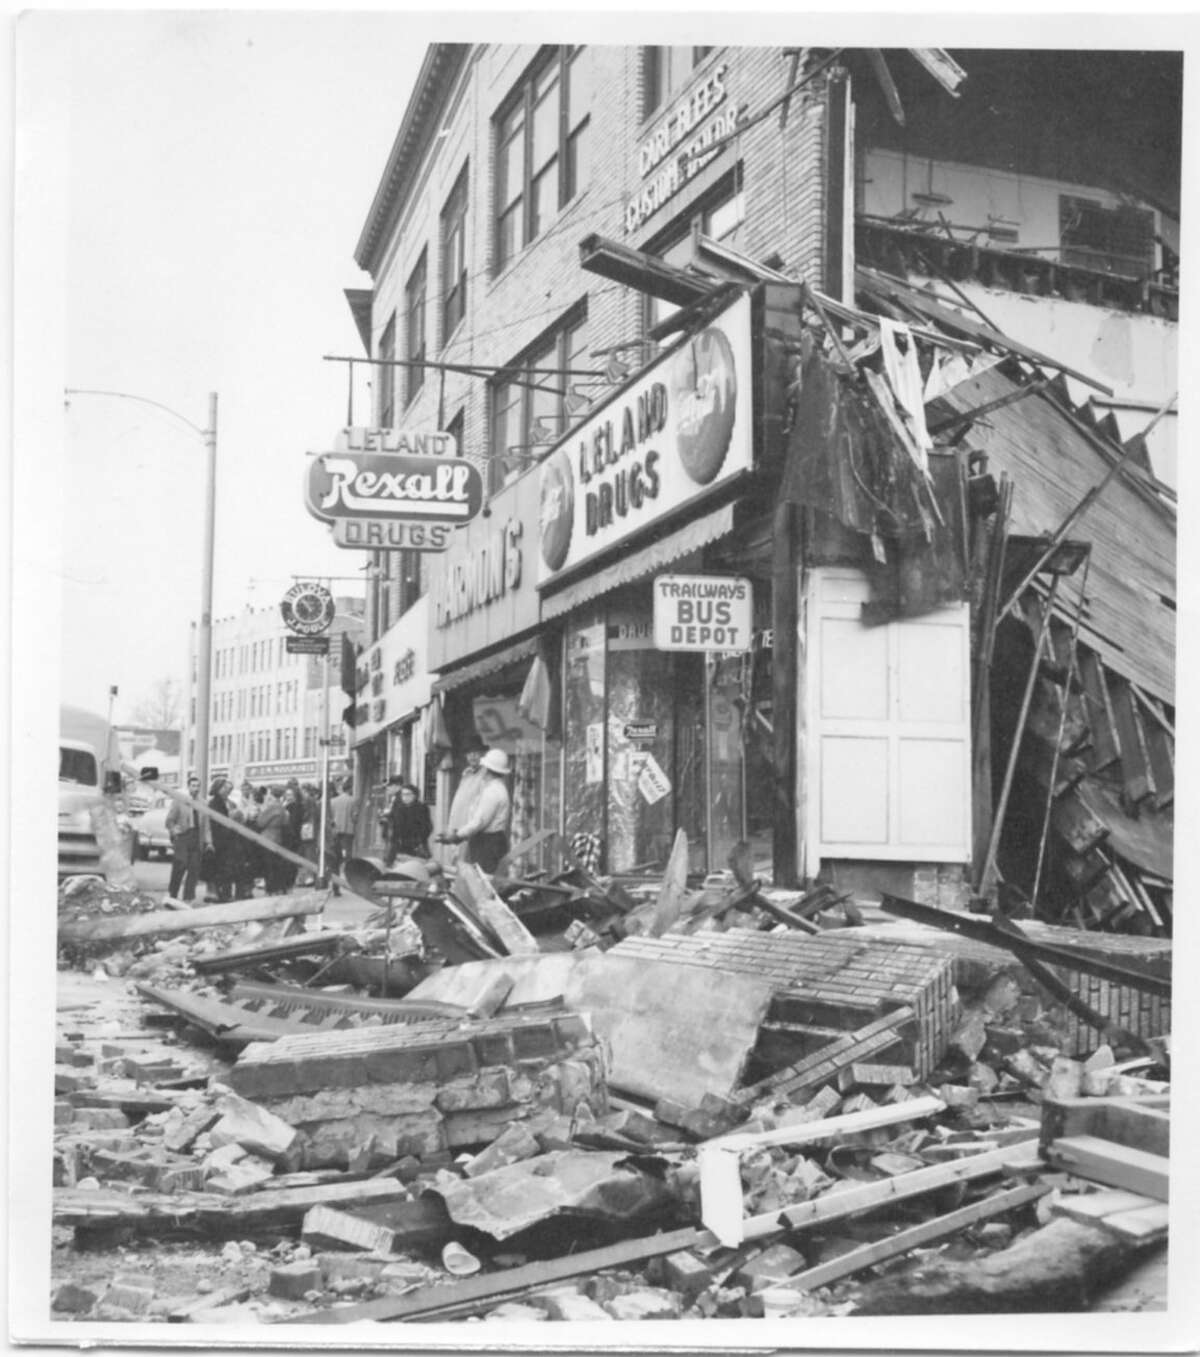 The flood of 1955 leaves destruction in its wake all over the Wall Street neighborhood of Norwalk.